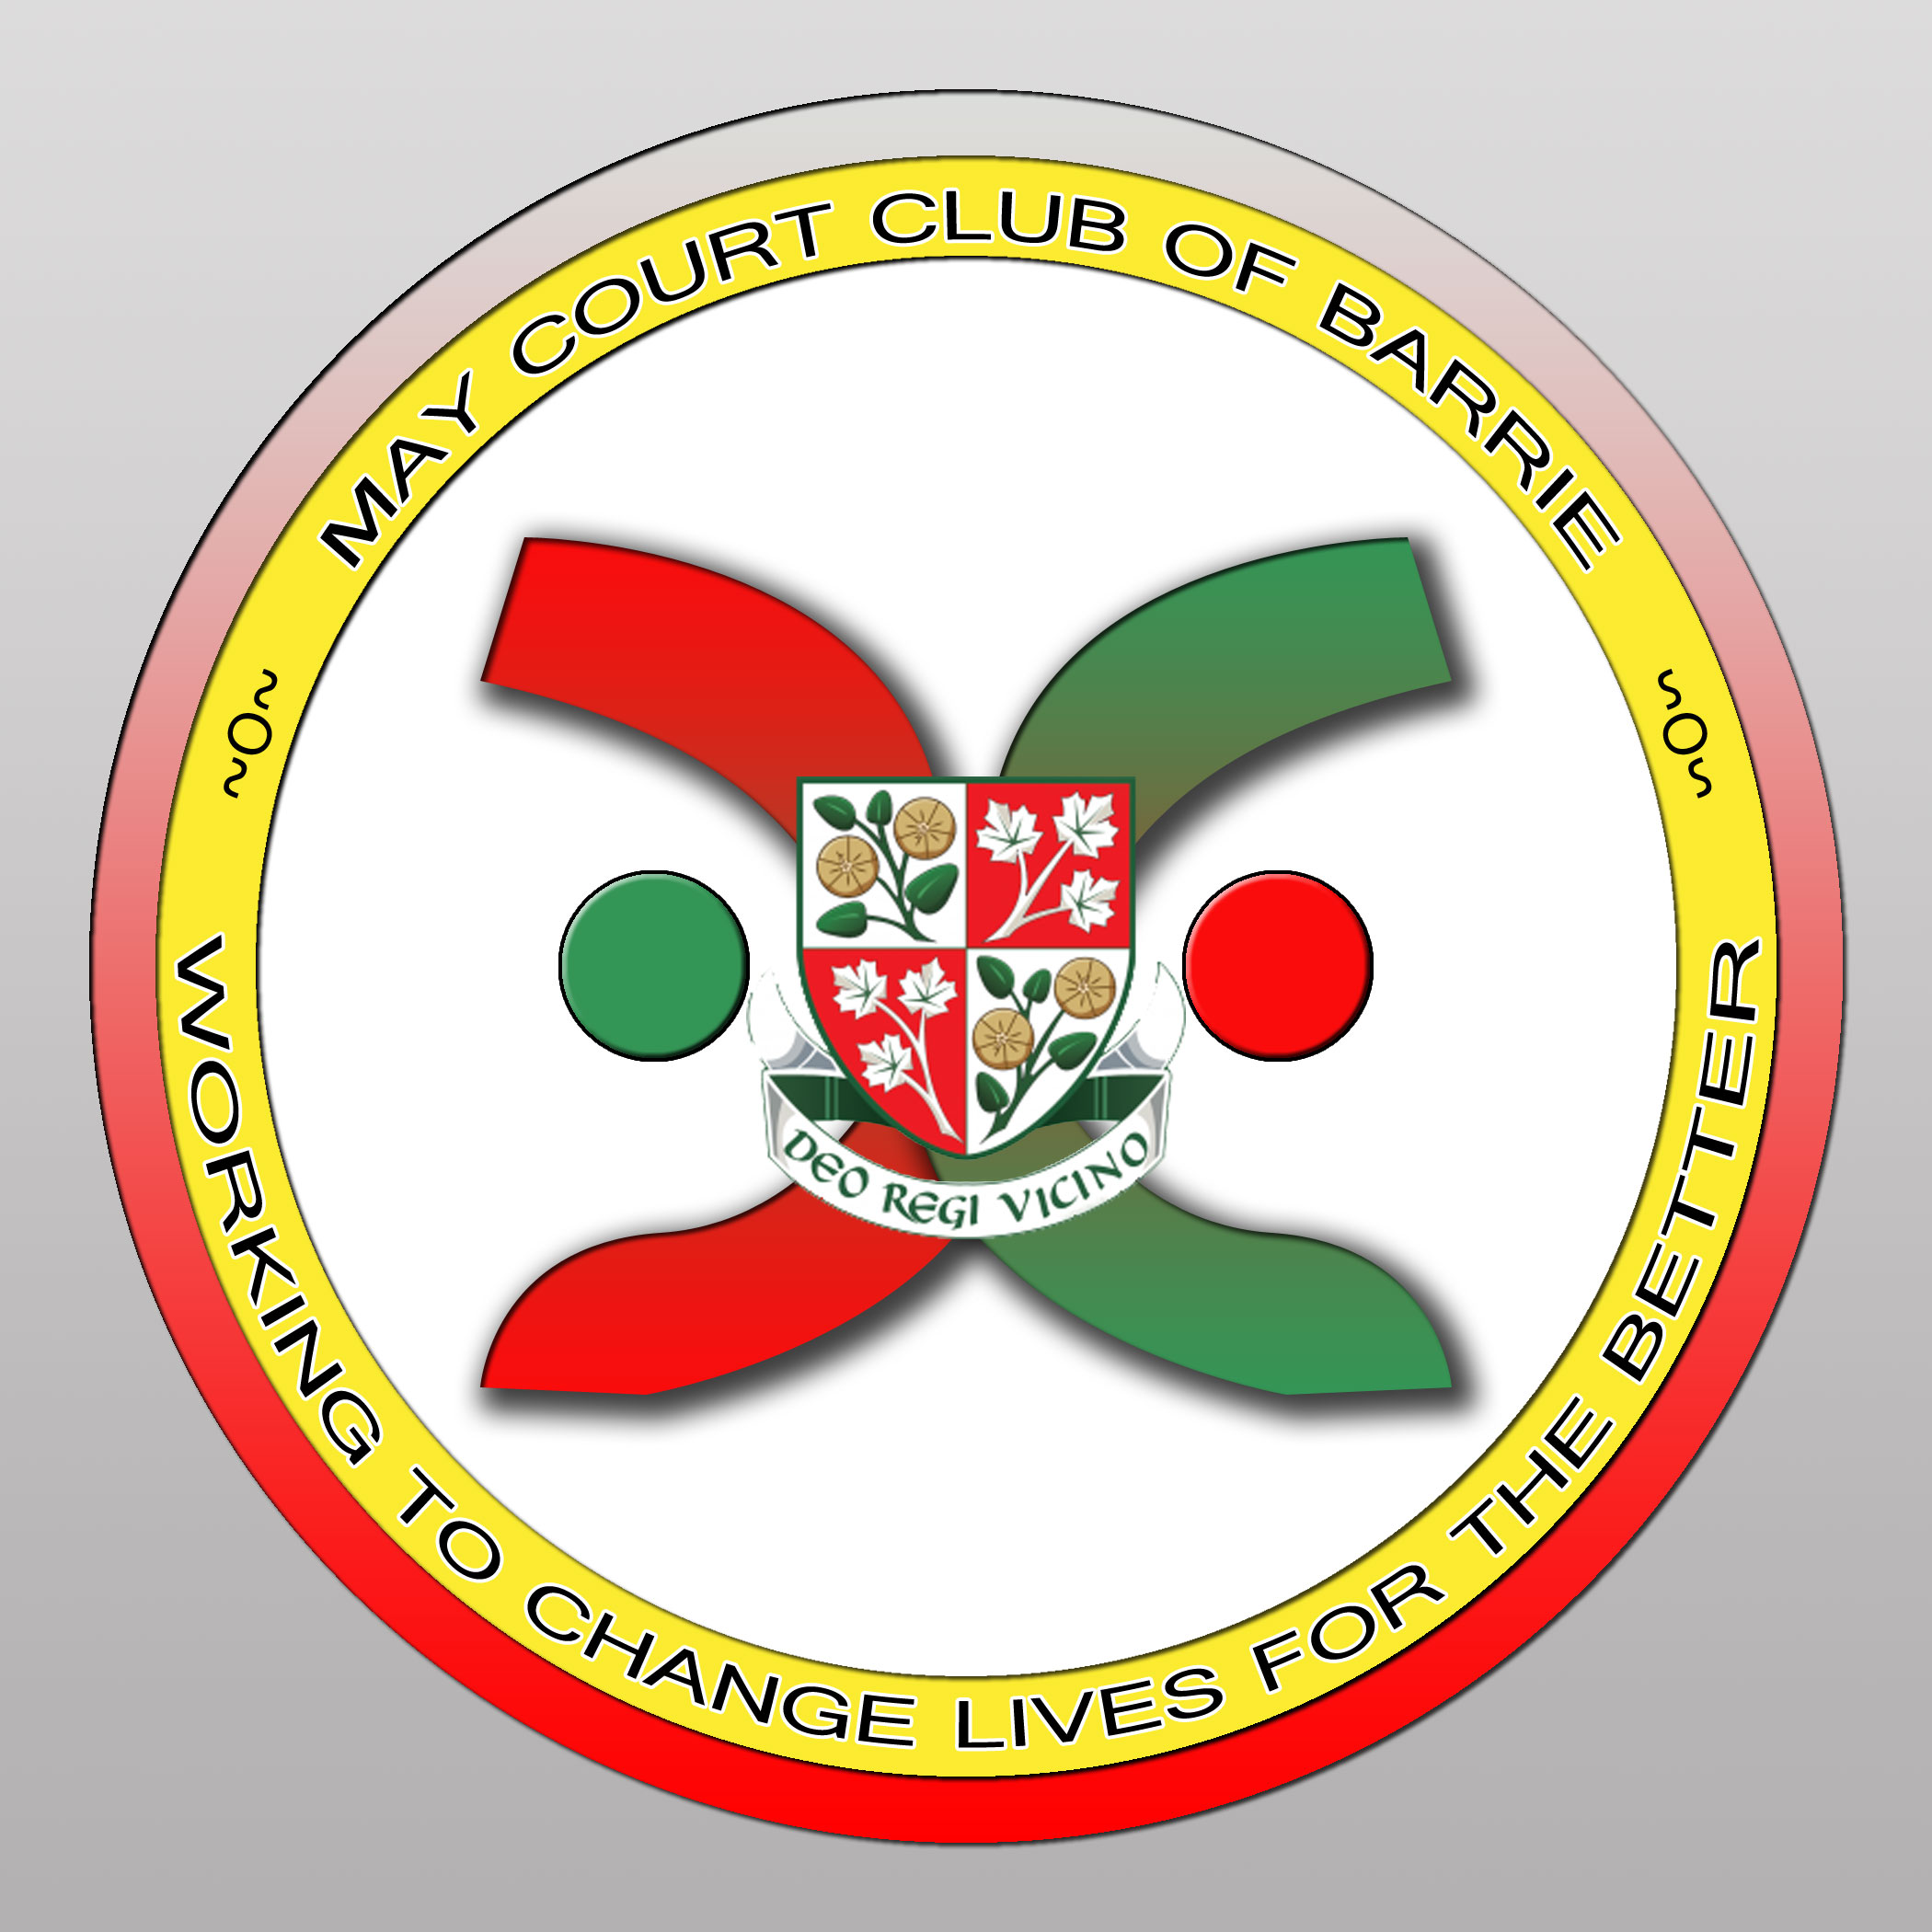 Logo Design by Raymond Mariano - Entry No. 102 in the Logo Design Contest New Logo Design for MAY COURT CLUB OF BARRIE.